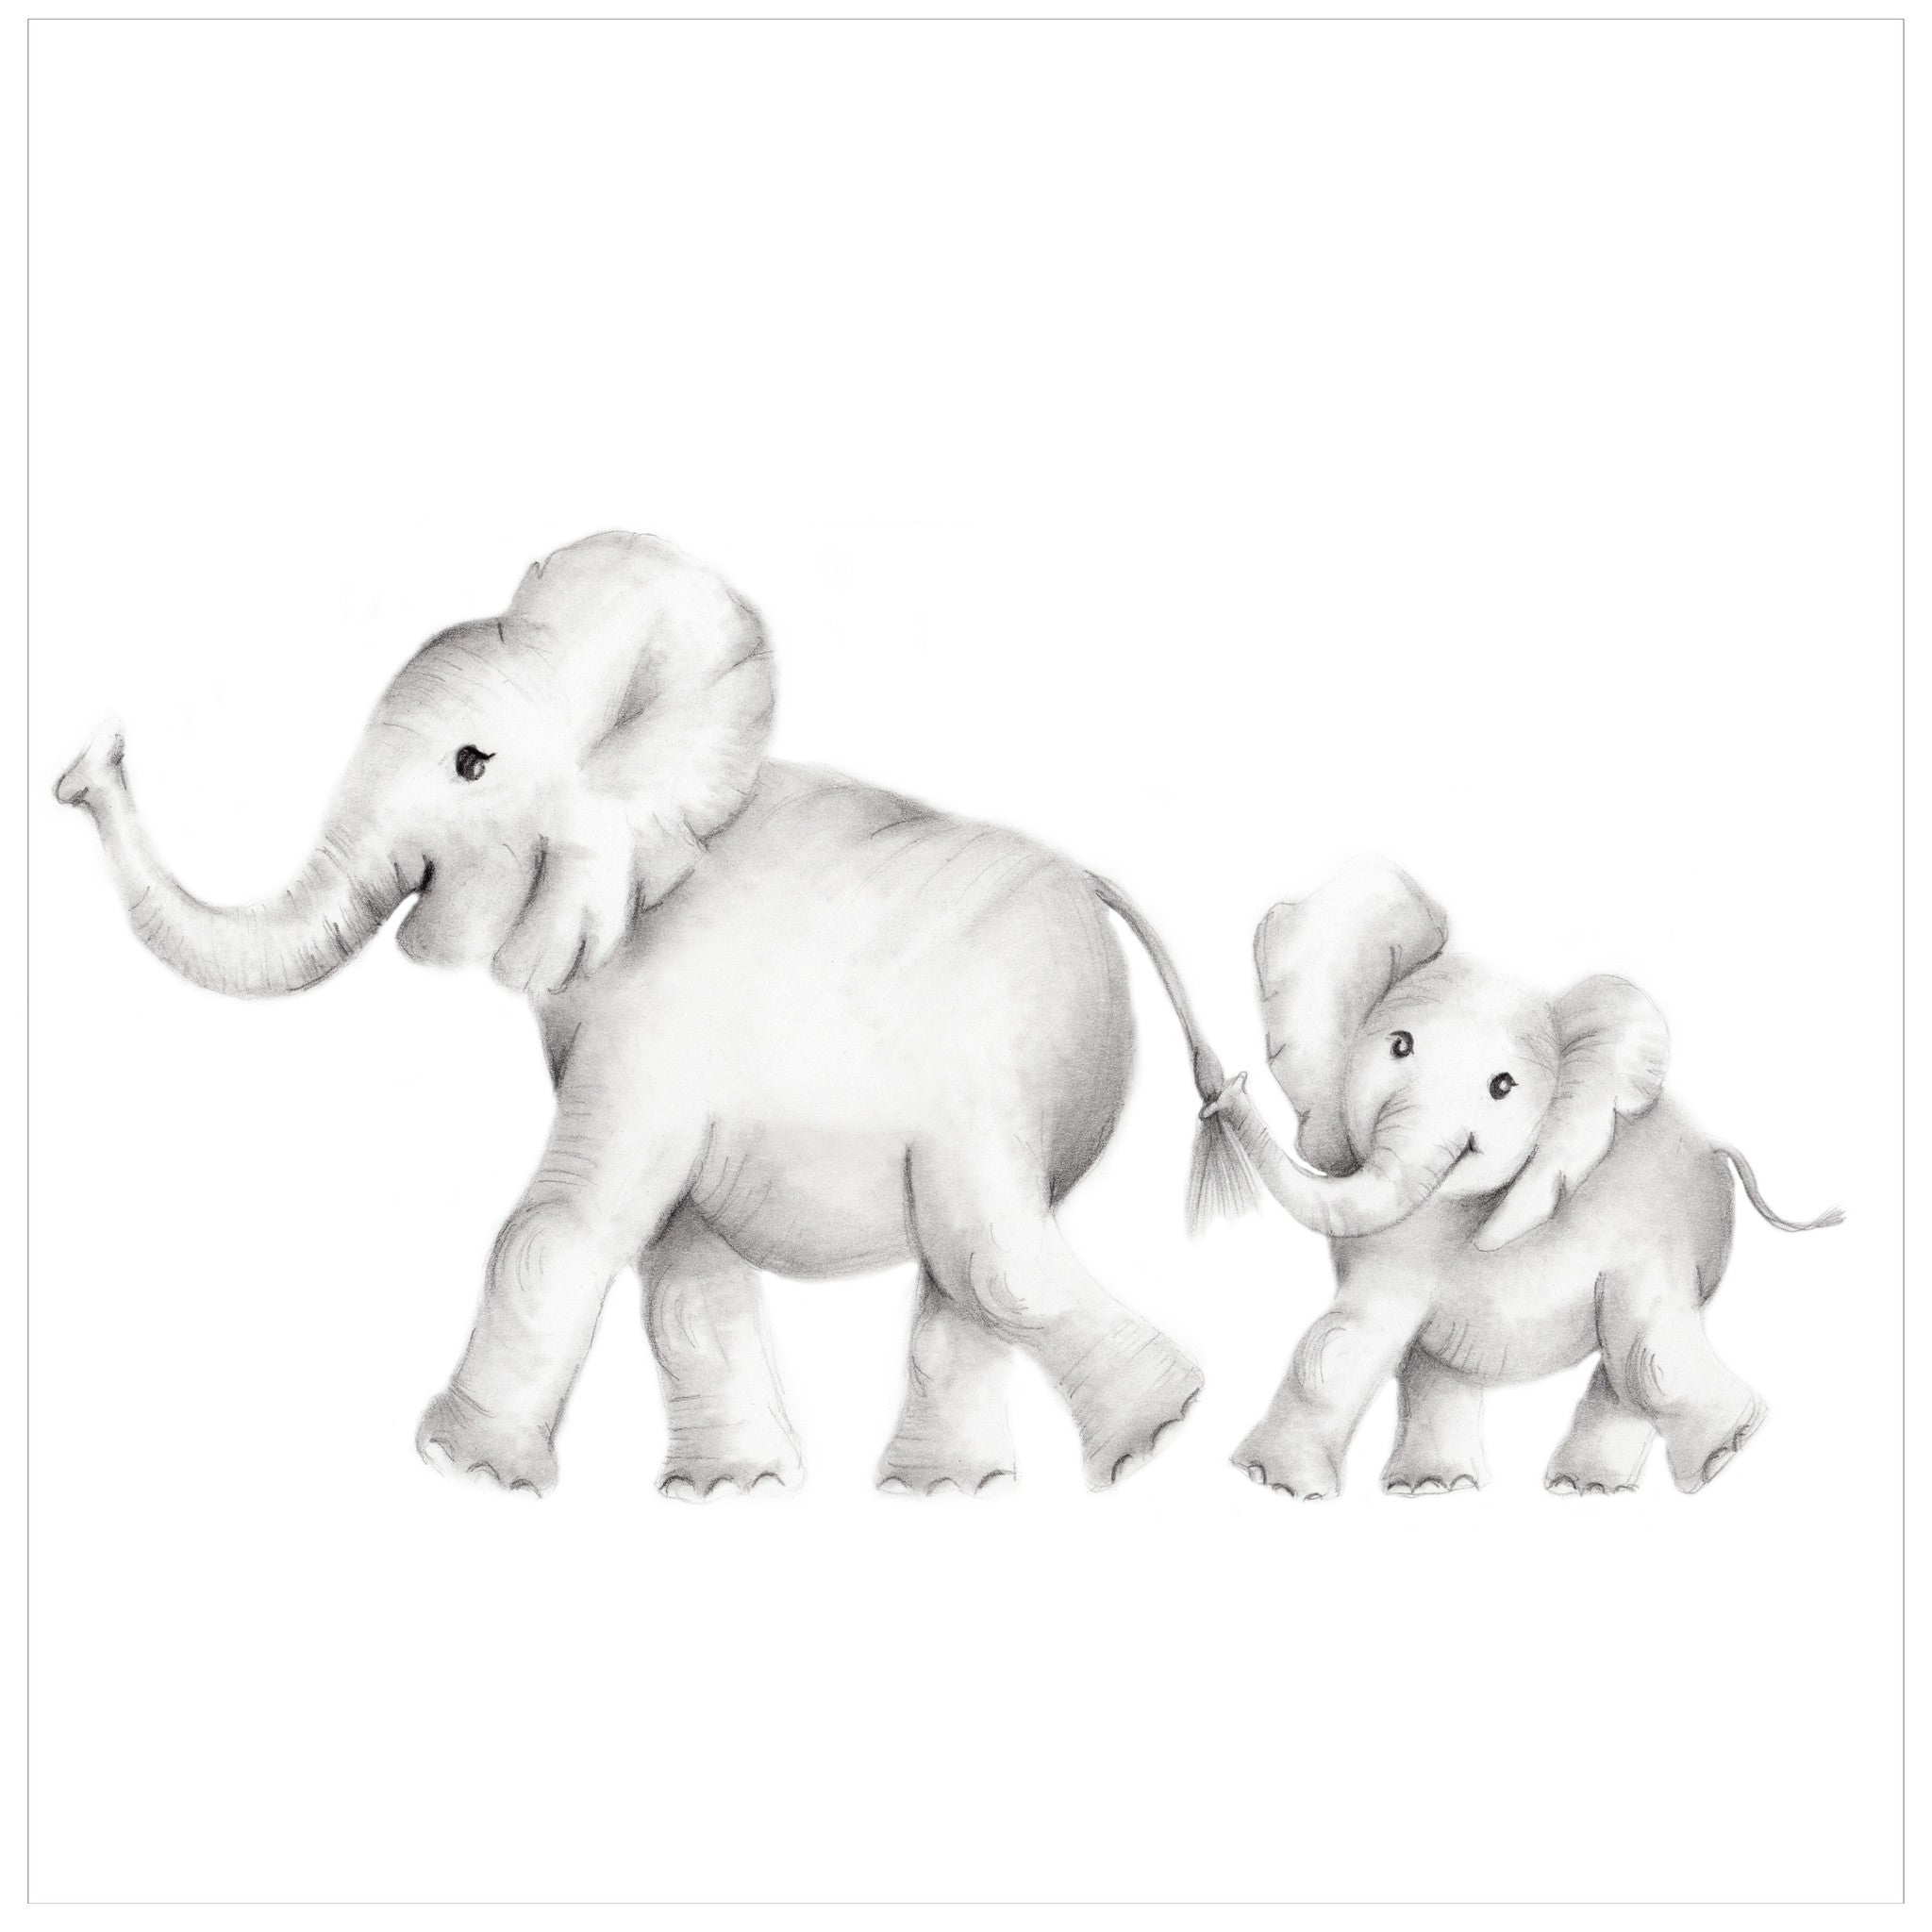 Elephant family pencil drawing print